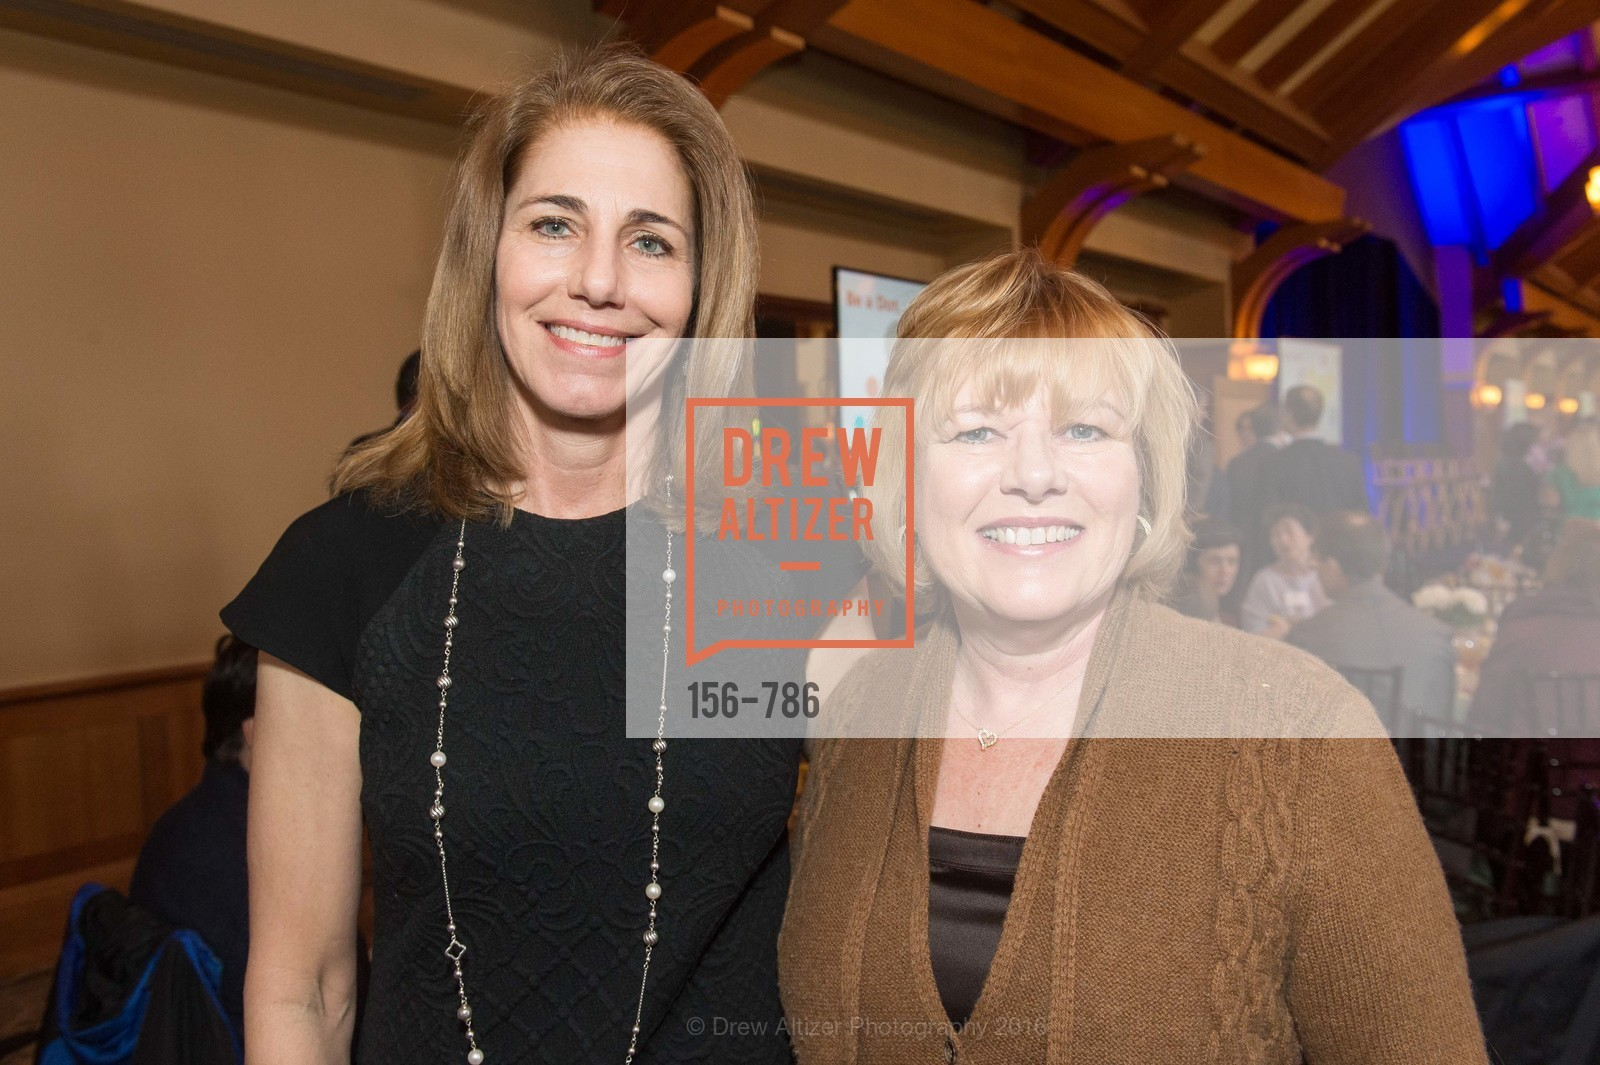 Julie Terrell Hooper, Mary Johnson, The Children's Health Council Breakfast, Sharon Height Golf and Country Club. 900 Sand Hill Rd, February 2nd, 2016,Drew Altizer, Drew Altizer Photography, full-service agency, private events, San Francisco photographer, photographer california